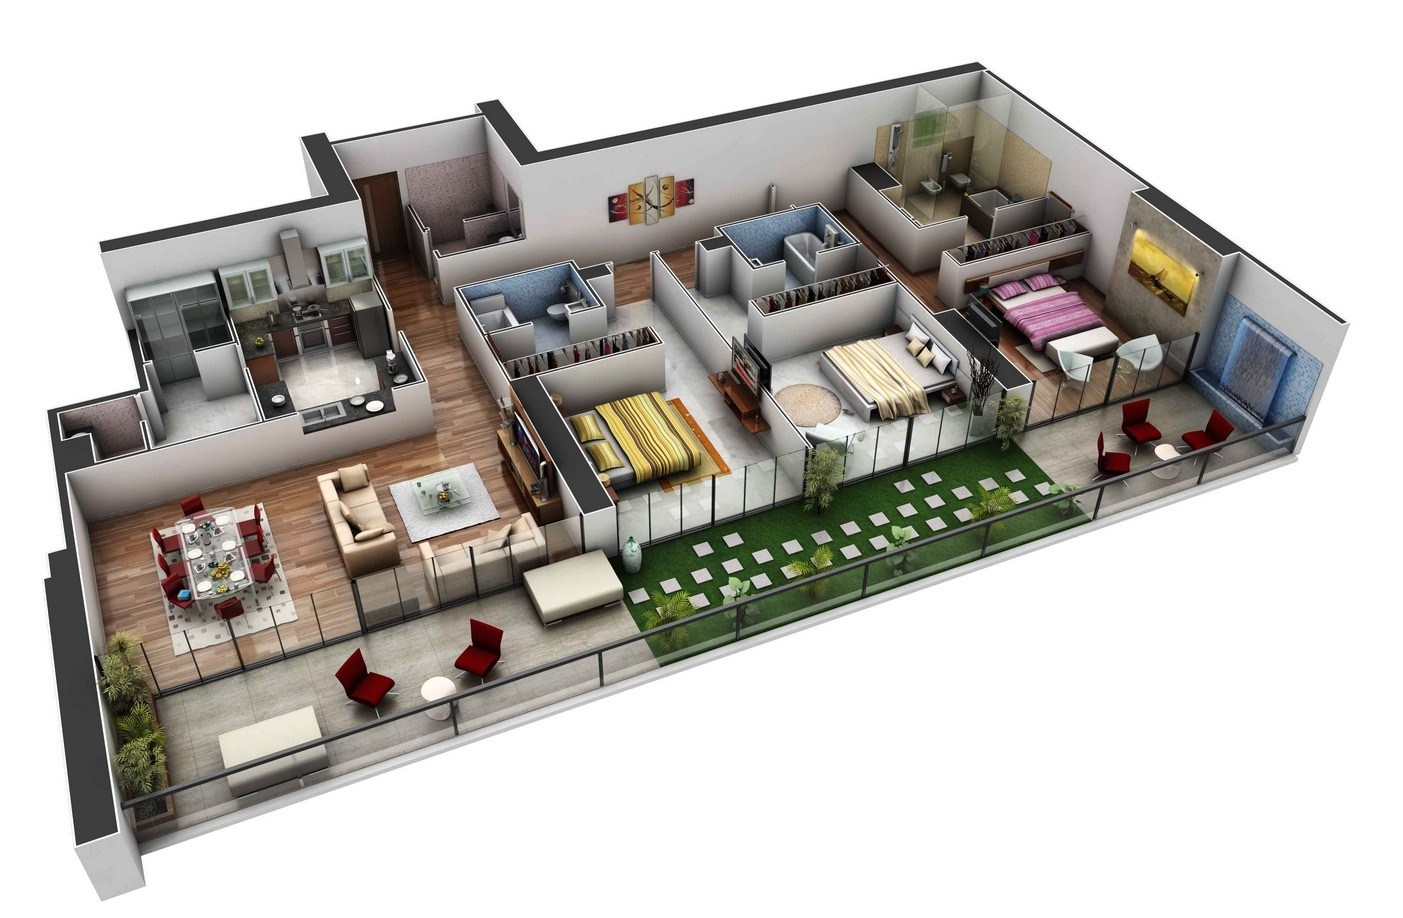 Outstanding 3 Bedroom Apartment House Plans Largest Home Design Picture Inspirations Pitcheantrous